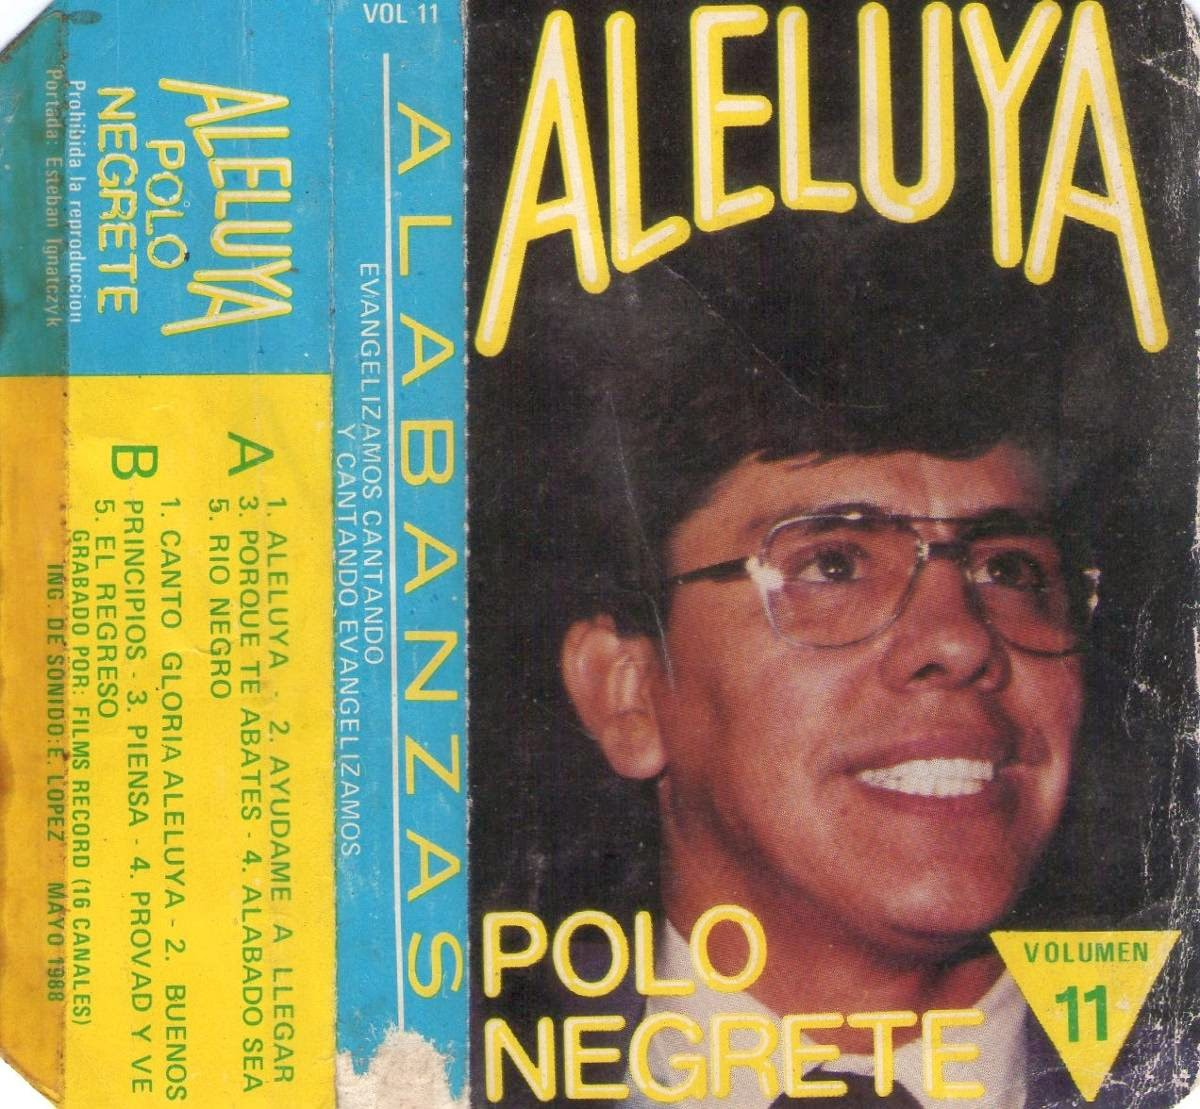 Polo Negrete-Vol 11-Aleluya-